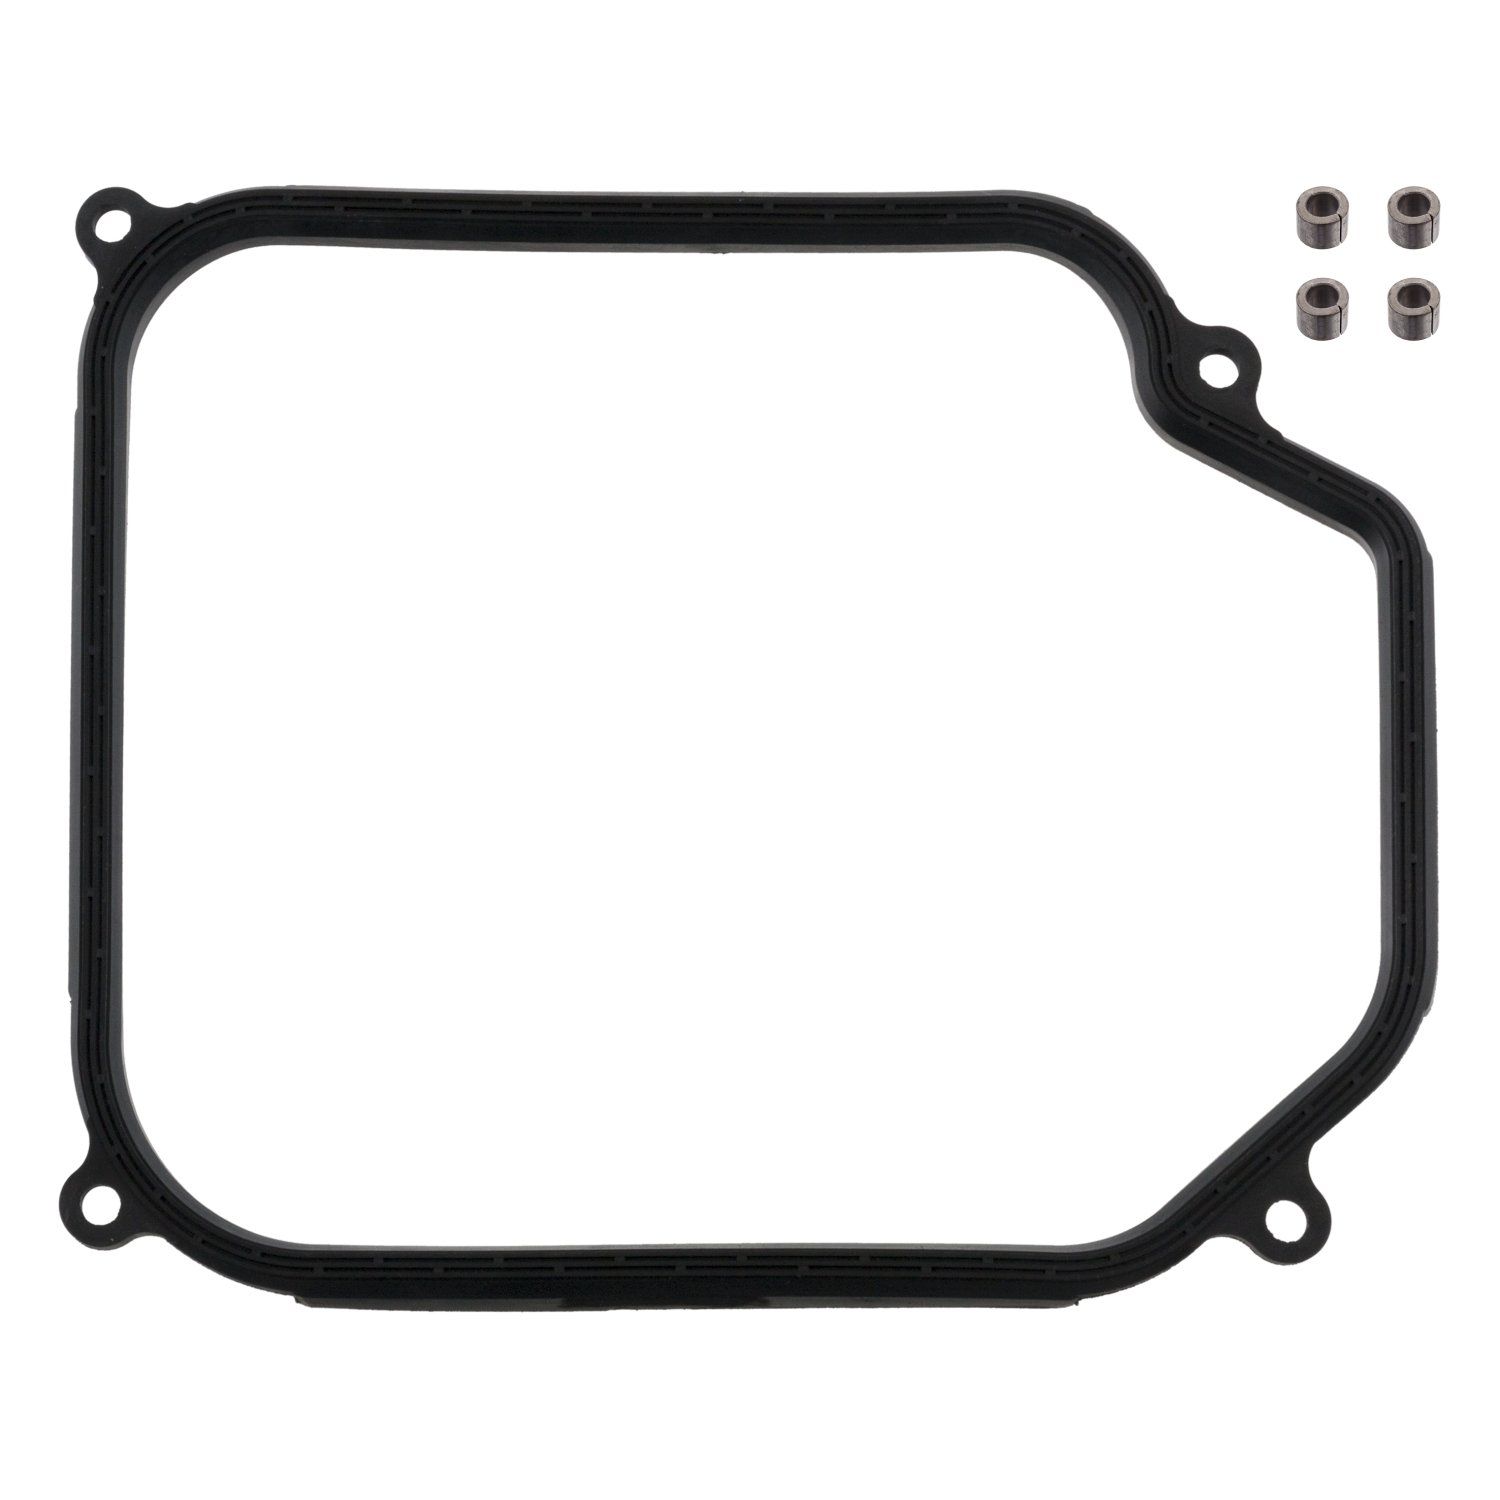 febi bilstein 14270 oil pan gasket for automatic transmission  - Pack of 1